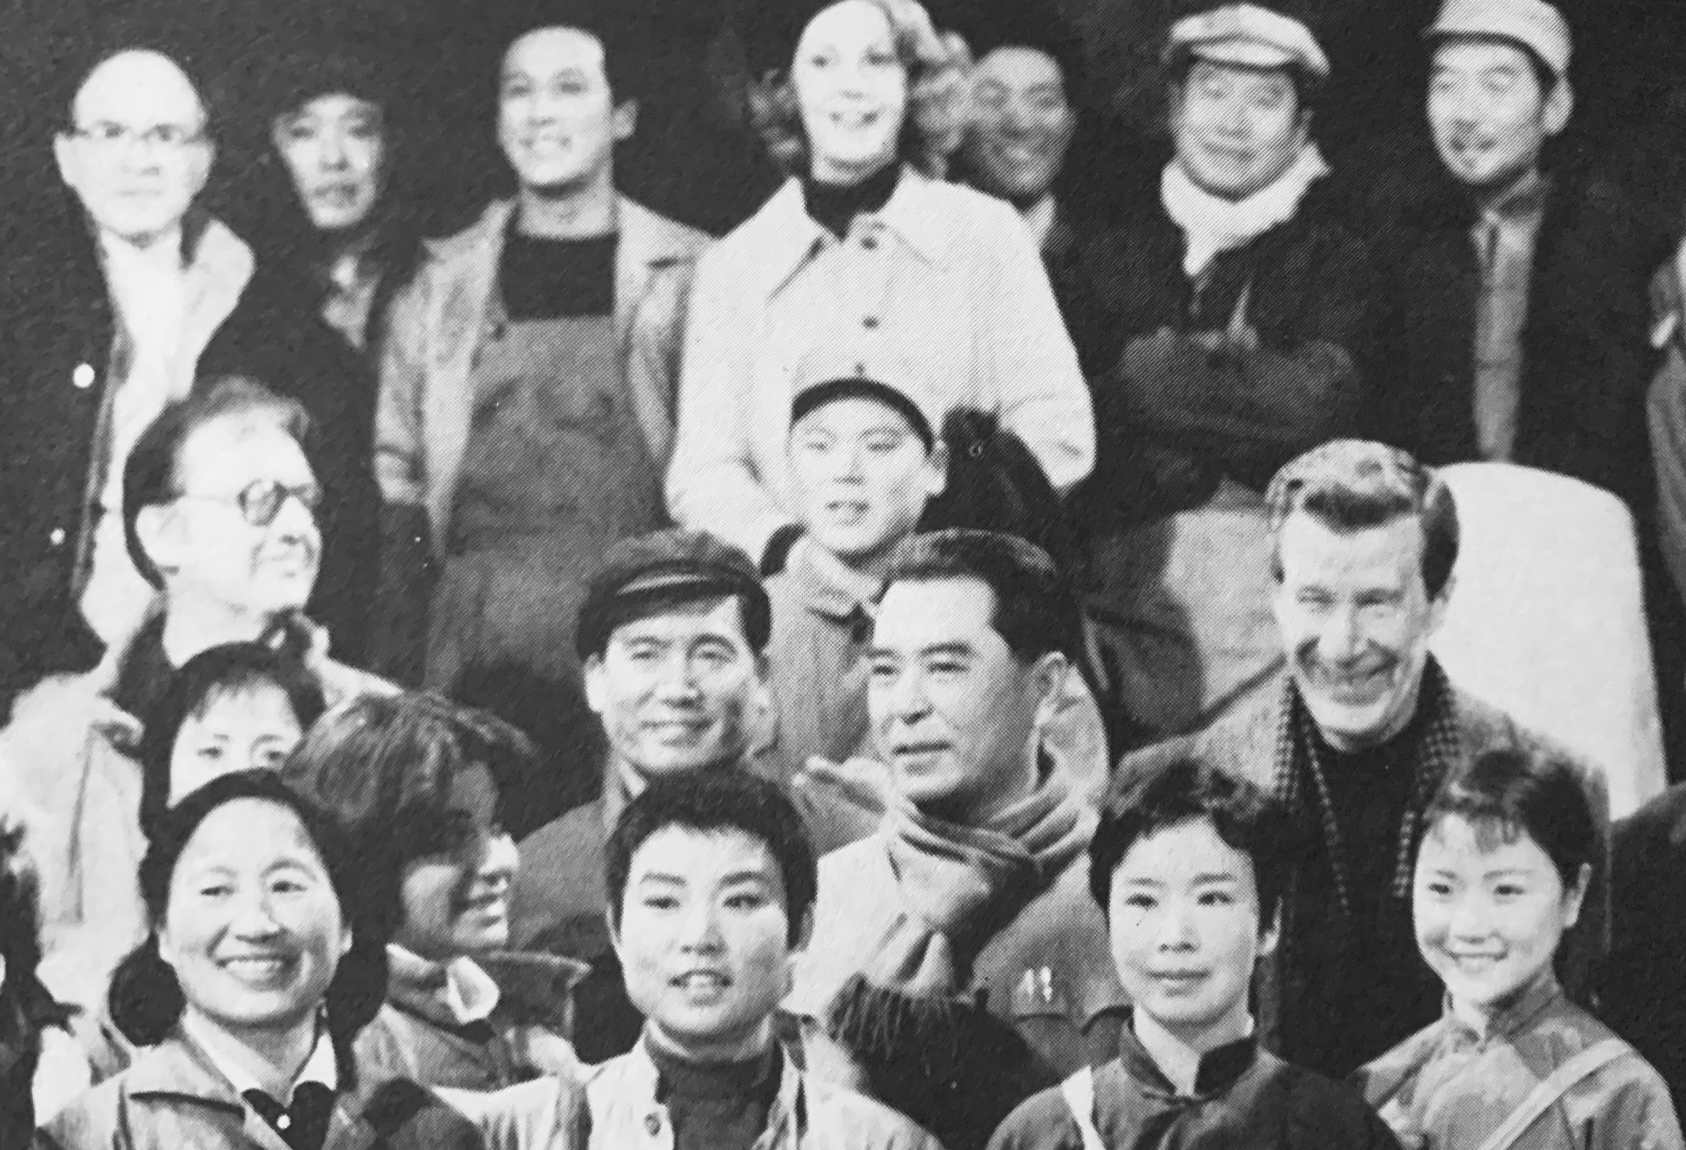 "Members of the February 1979 delegation with the cast of Newsboy, a play about Zhou Enlai. Schuyler Chapin is on the right of ""Premier Zhou"" and Rosalind Bonerz is on his left. Steve Allen (second row), Ernest Kinoy (back row), and Jayne Meadows (back row) are the other Americans."